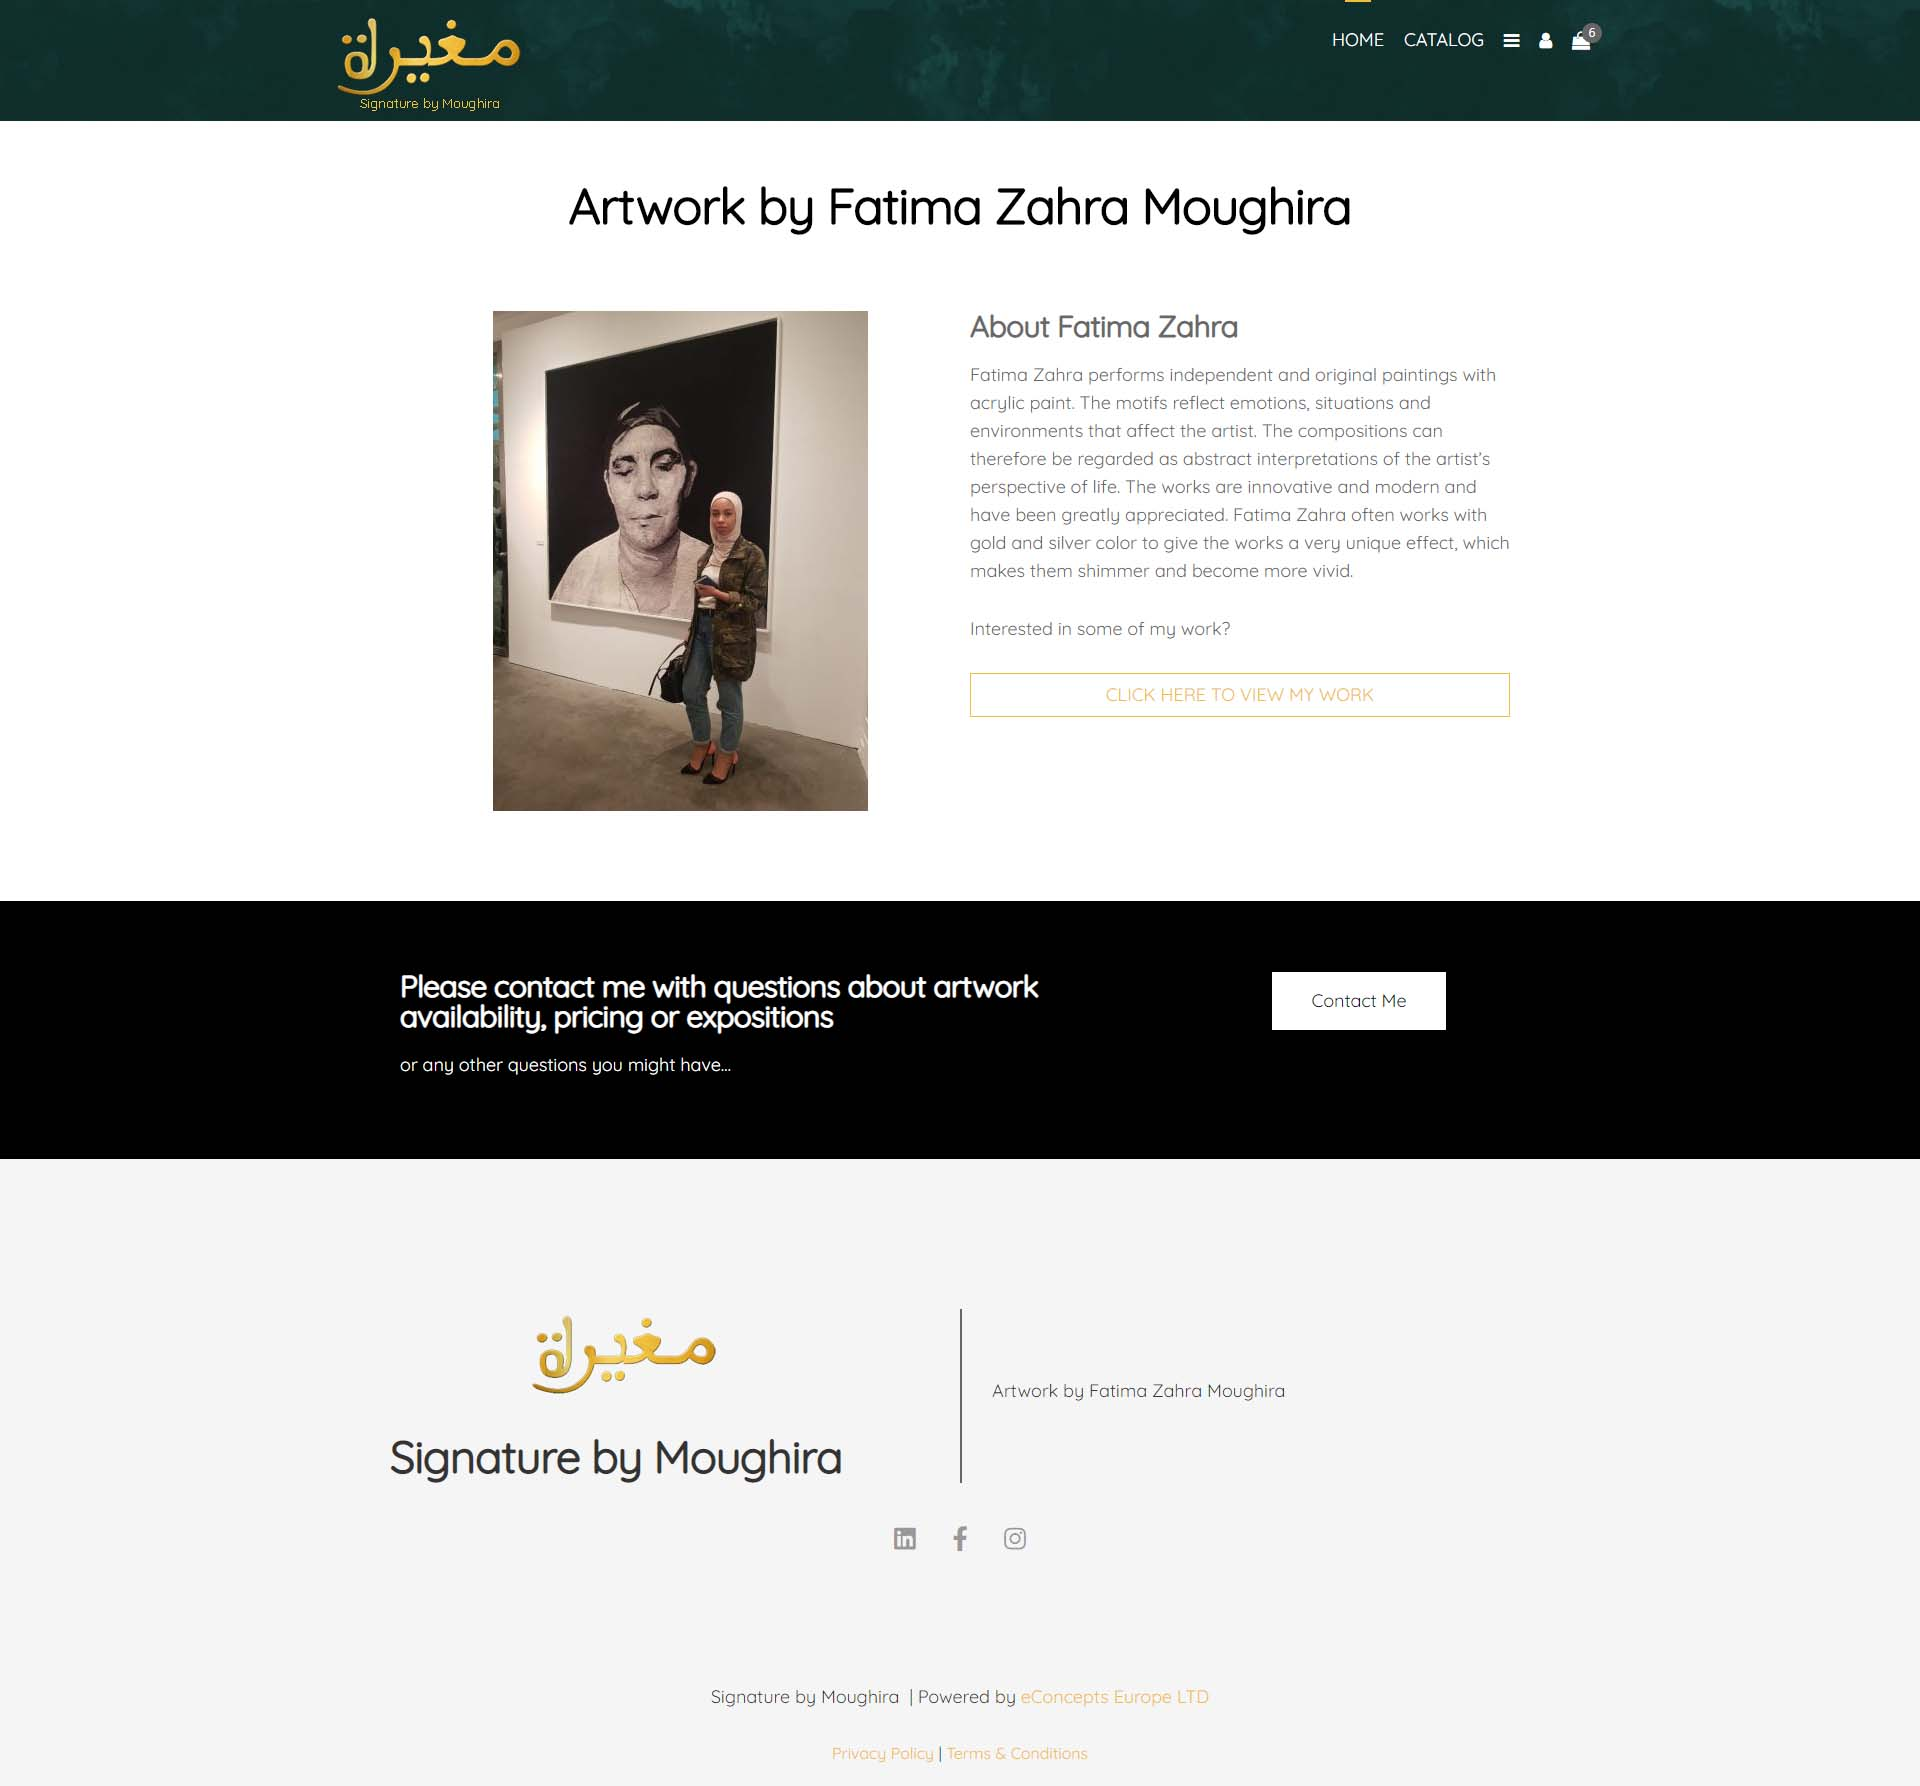 art webshop Signature by Moughira